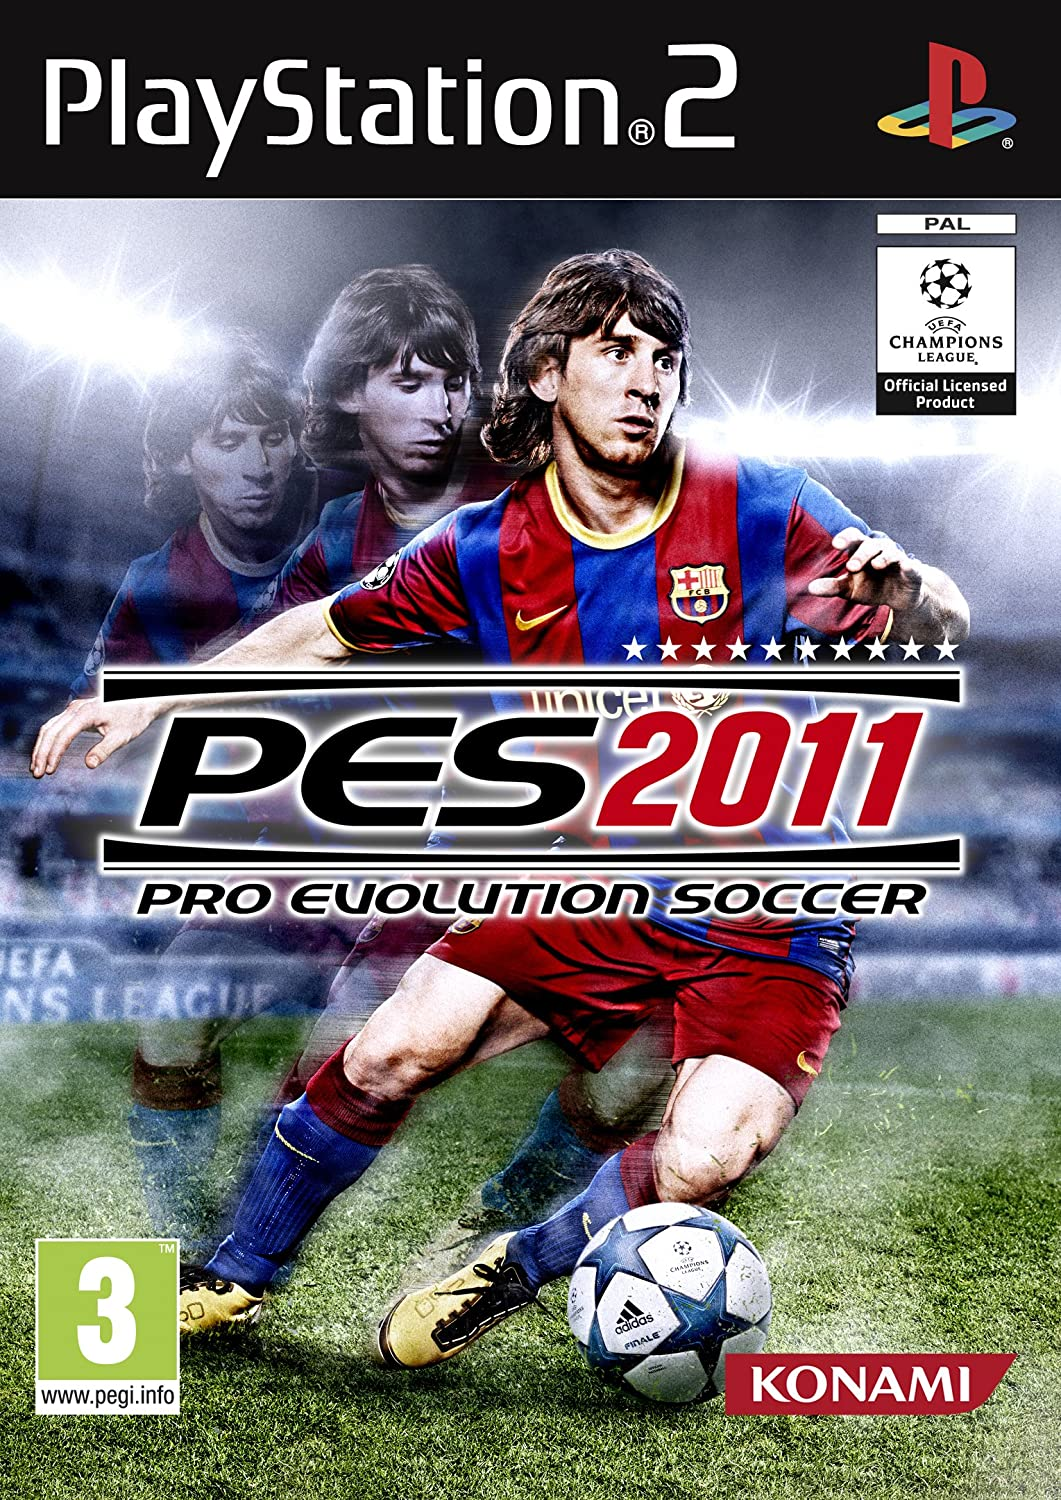 Pro Evolution Soccer 2011 (PS2): Amazon.co.uk: PC & Video Games